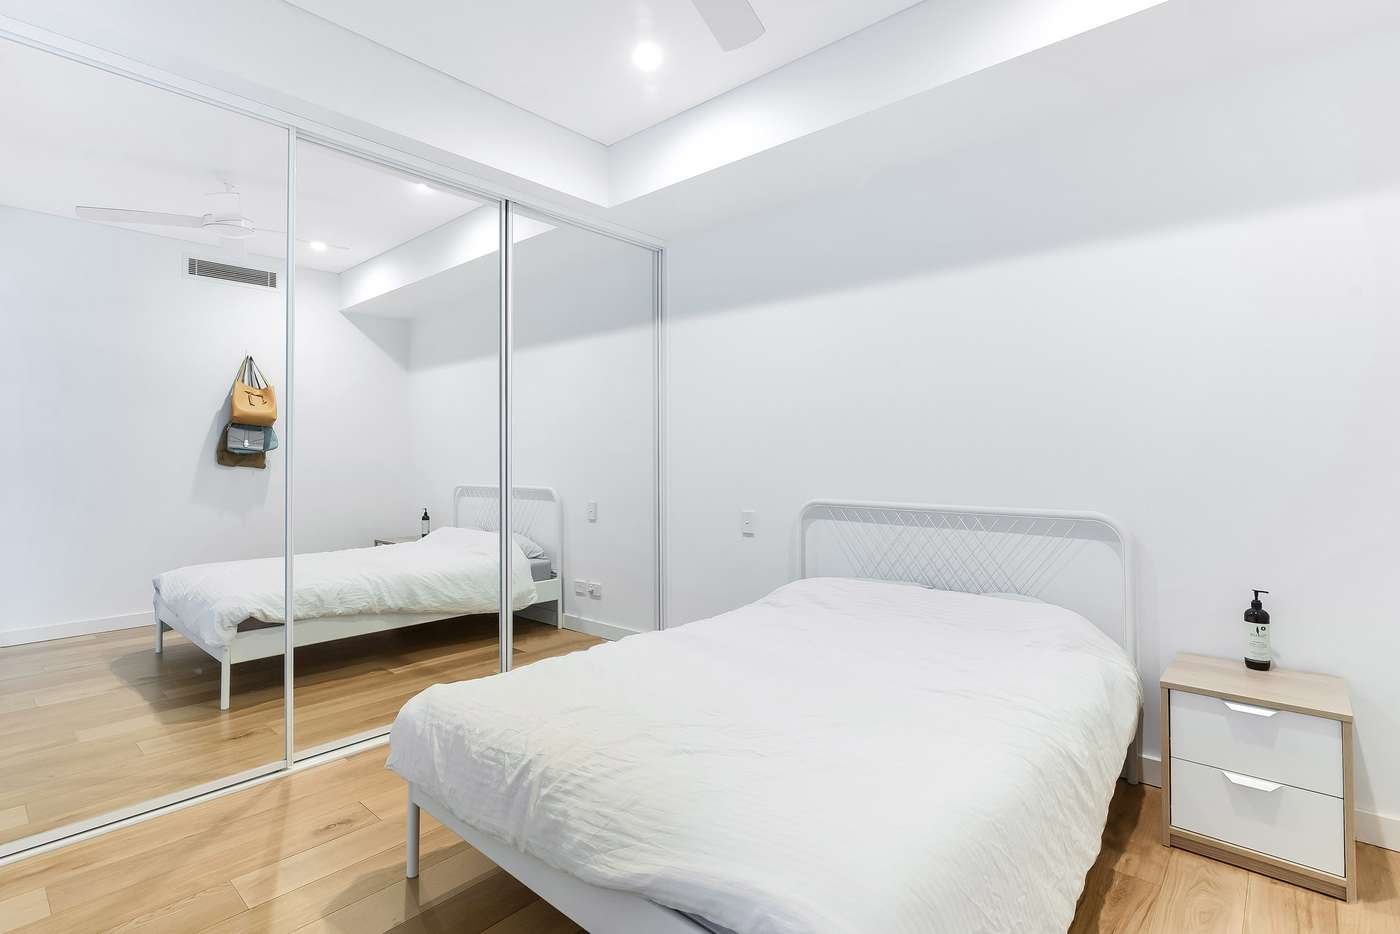 Fifth view of Homely apartment listing, 22/30-34 Chalmers Street, Surry Hills NSW 2010